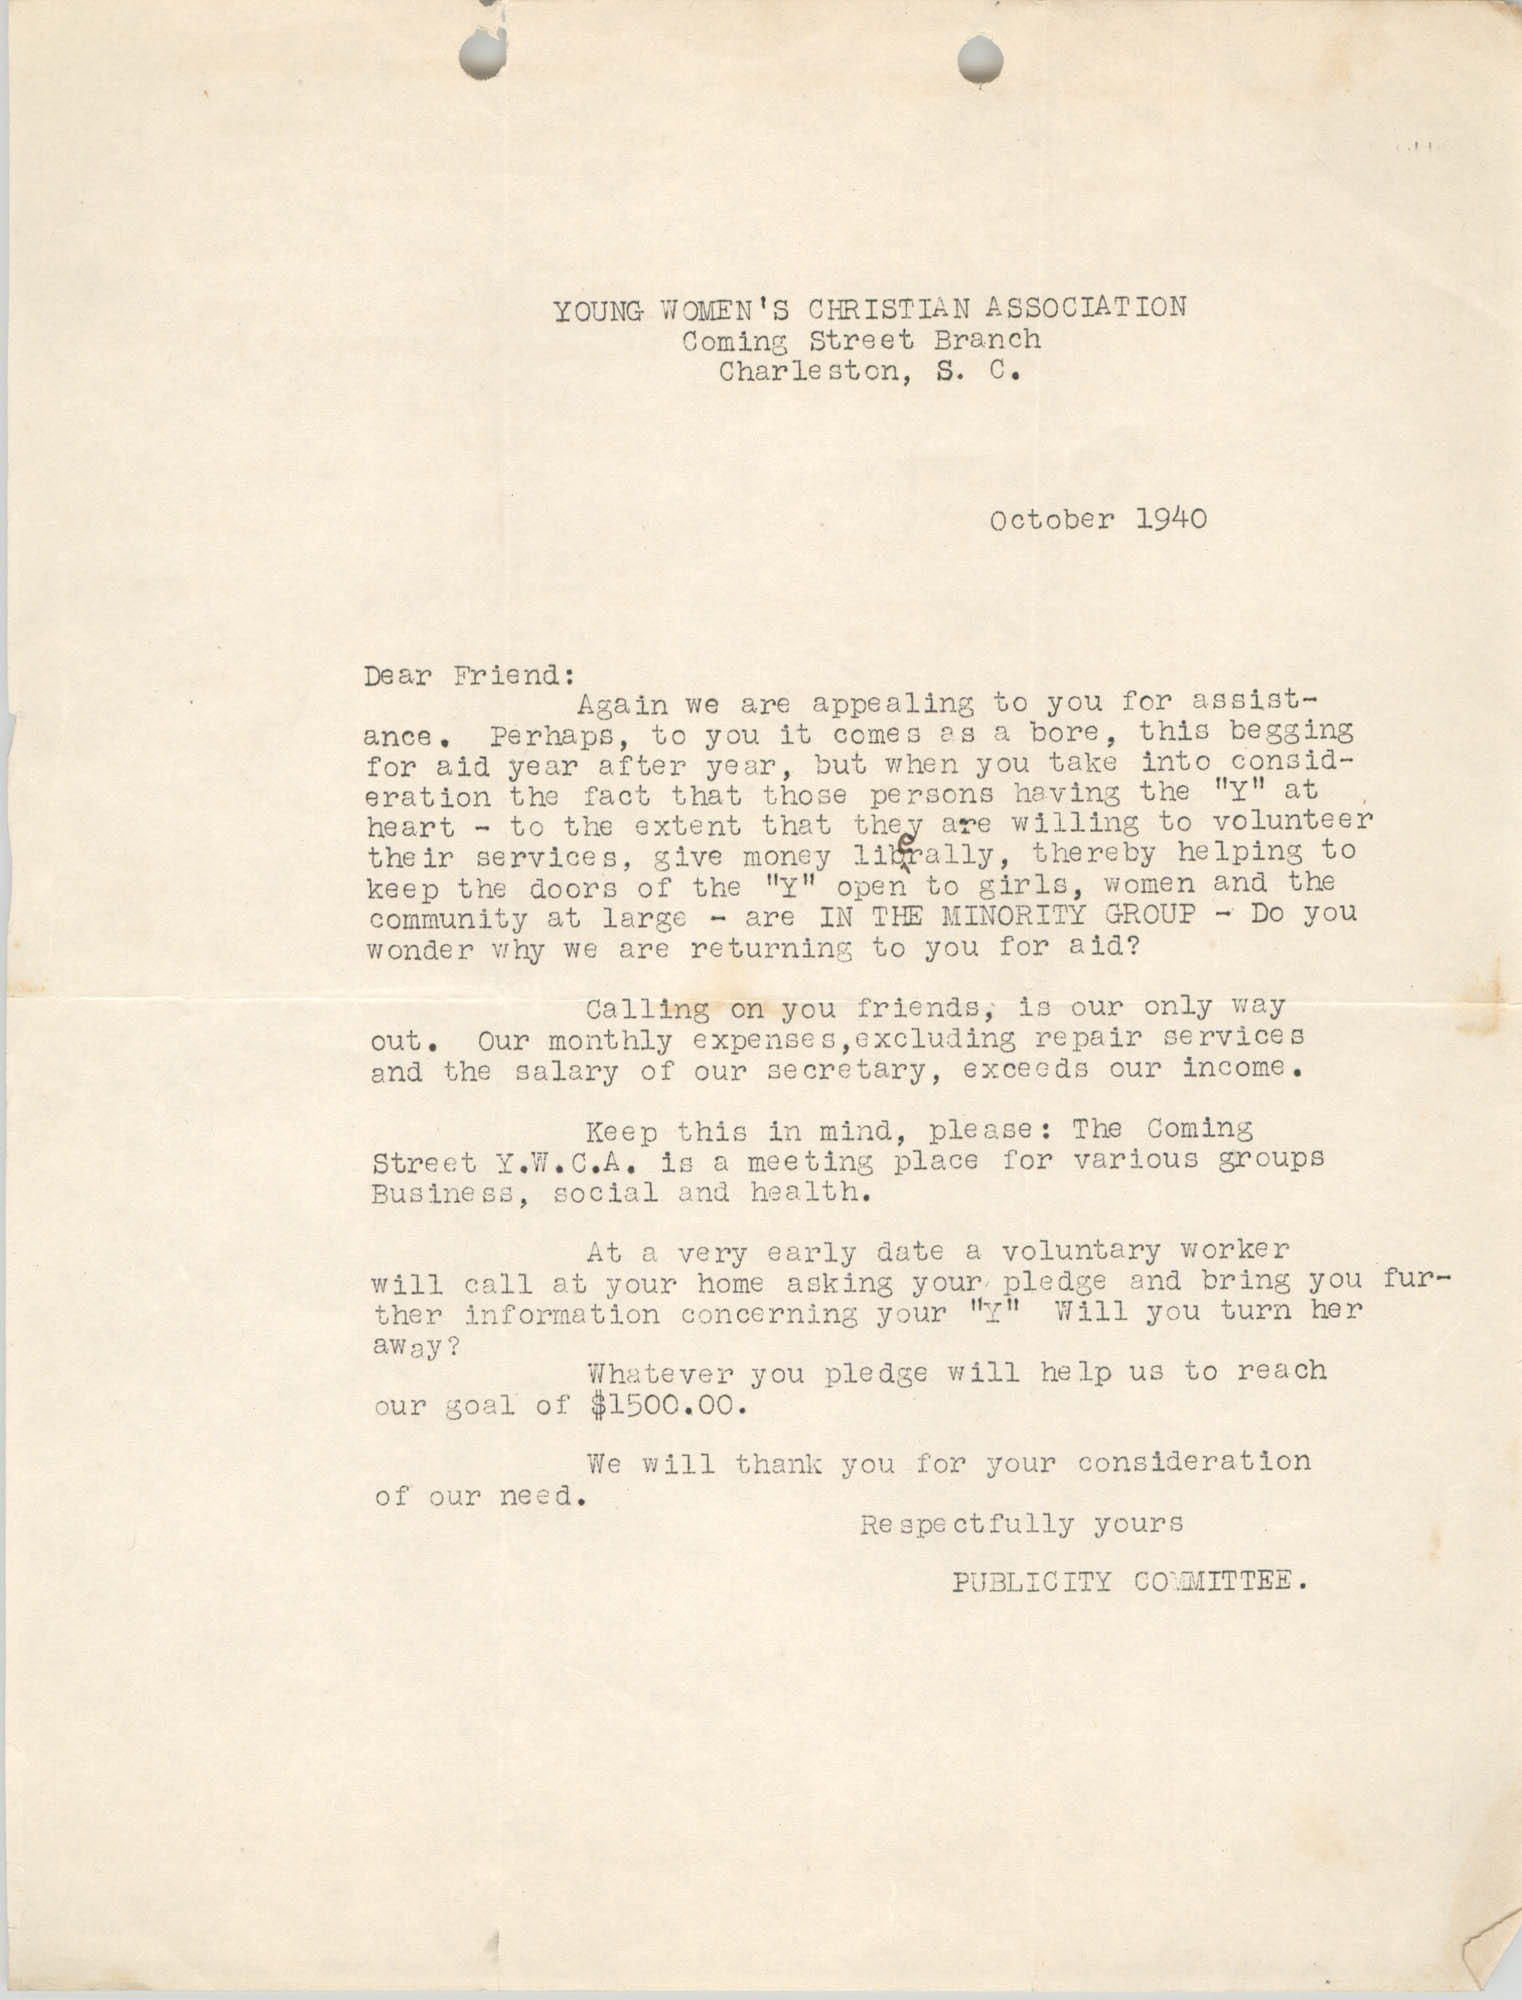 Letter from Coming Street Y.W.C.A., October 1940